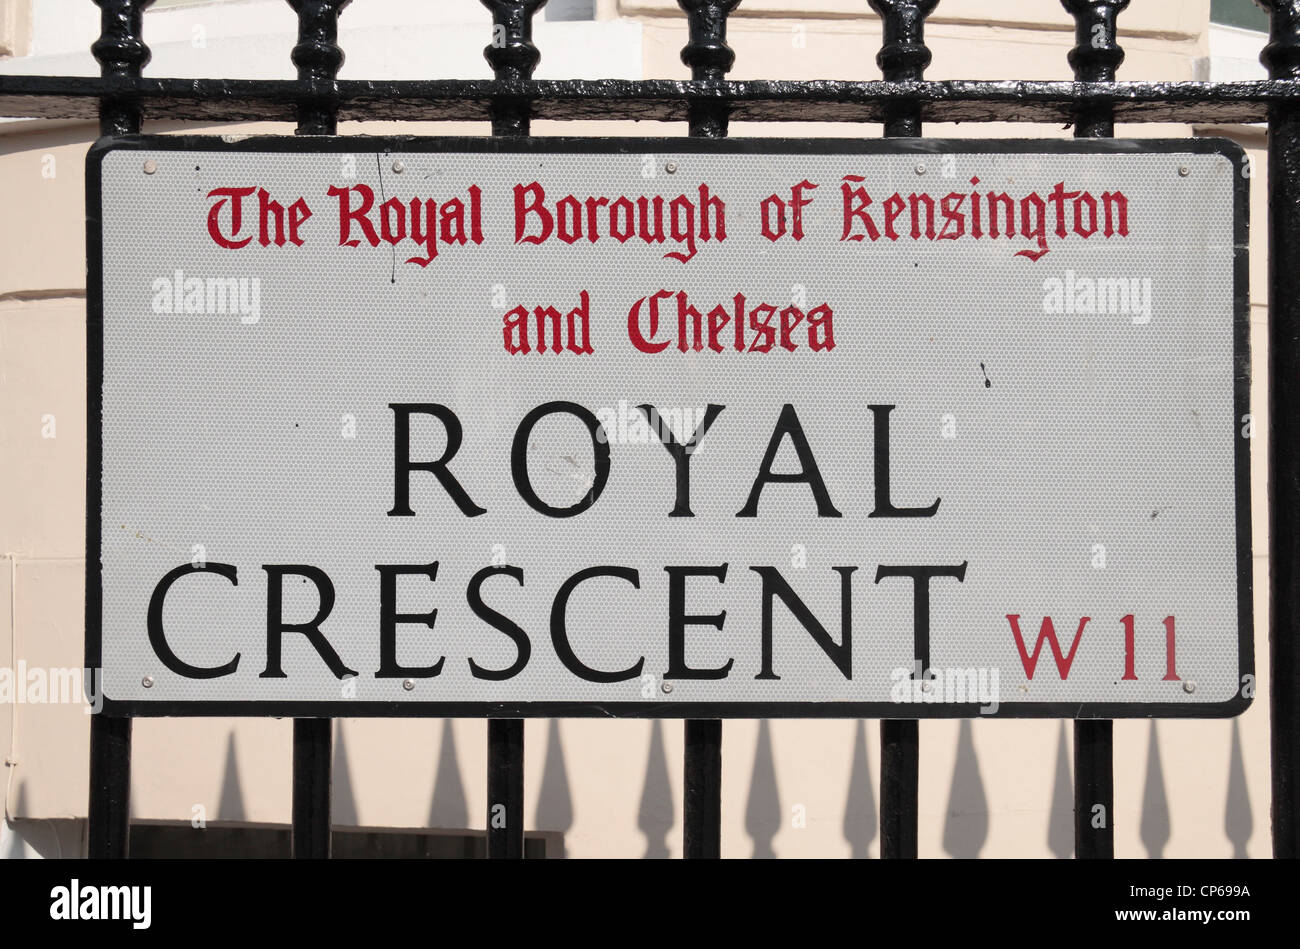 Ciudades del mundo (A a la Z) - Página 3 Street-sign-for-royal-crescent-w11-in-the-royal-borough-of-kensington-CP699A